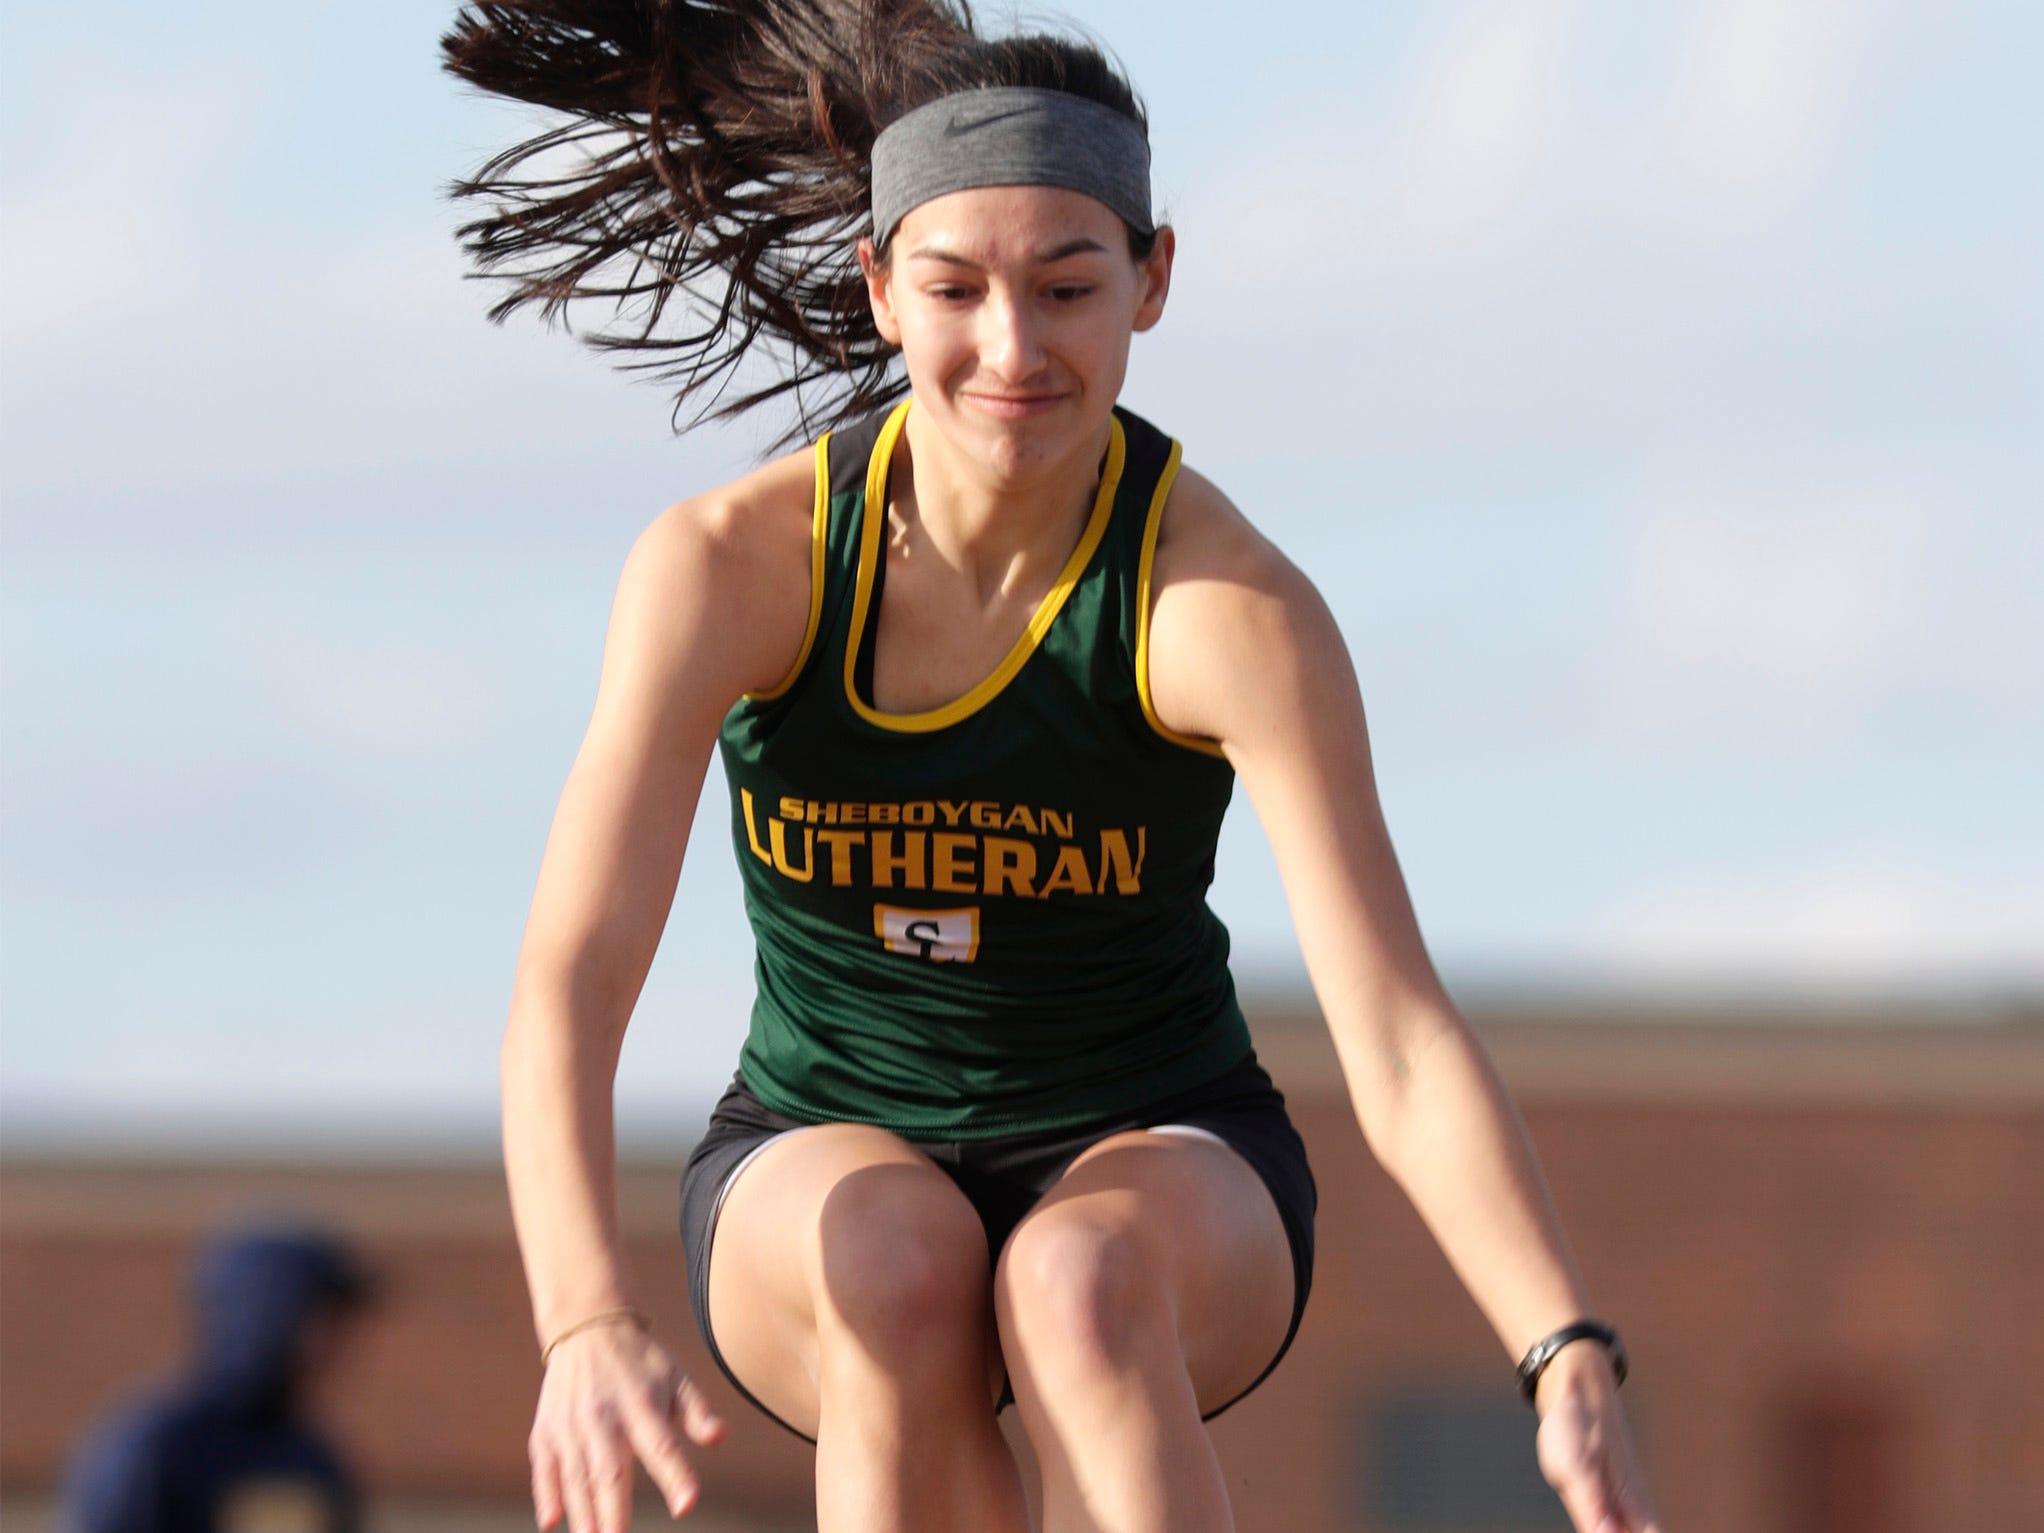 Sheboygan Lutheran's Emma Schmideler is airborne during her long jump attempt at the Howards Grove track meet, Tuesday, April 9, 2019, in Howards, Wis.